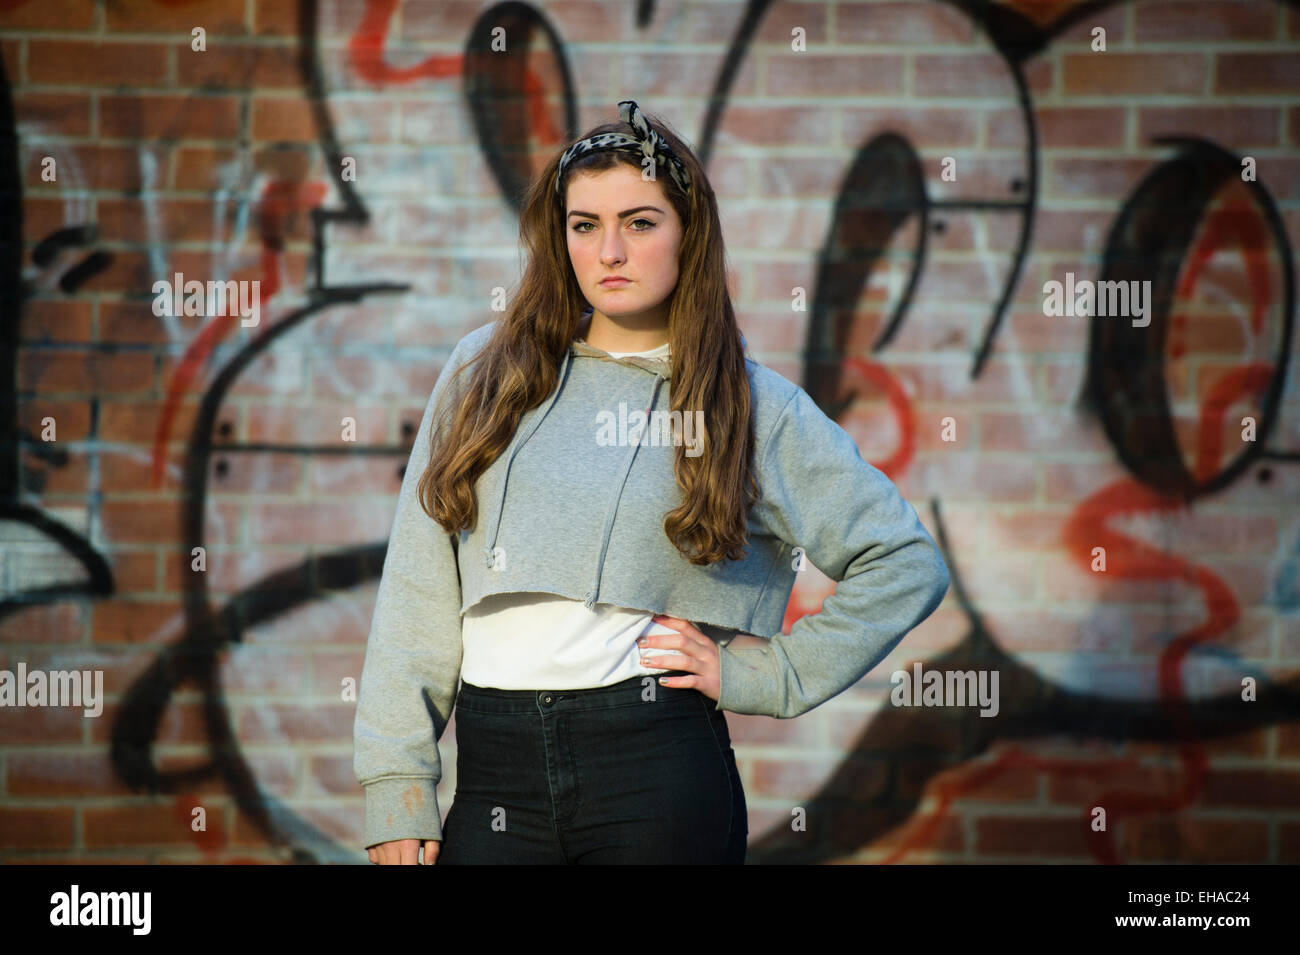 Graffiti Teenager Teen Uk High Resolution Stock Photography And Images Alamy